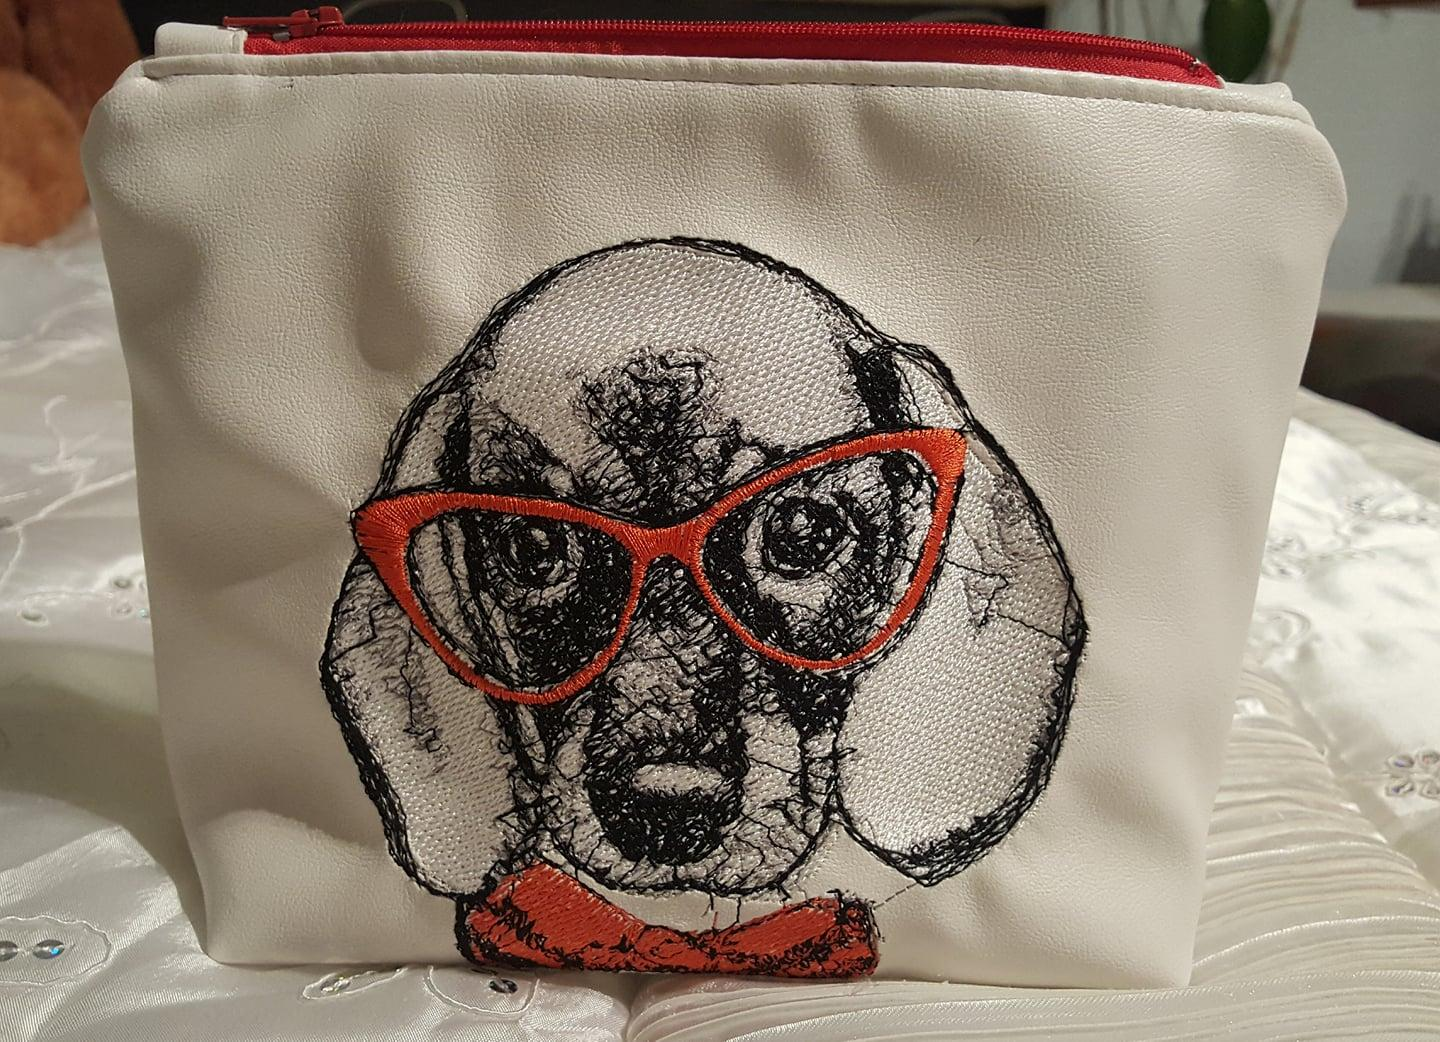 Embroidered bag with dog in red glasses free design